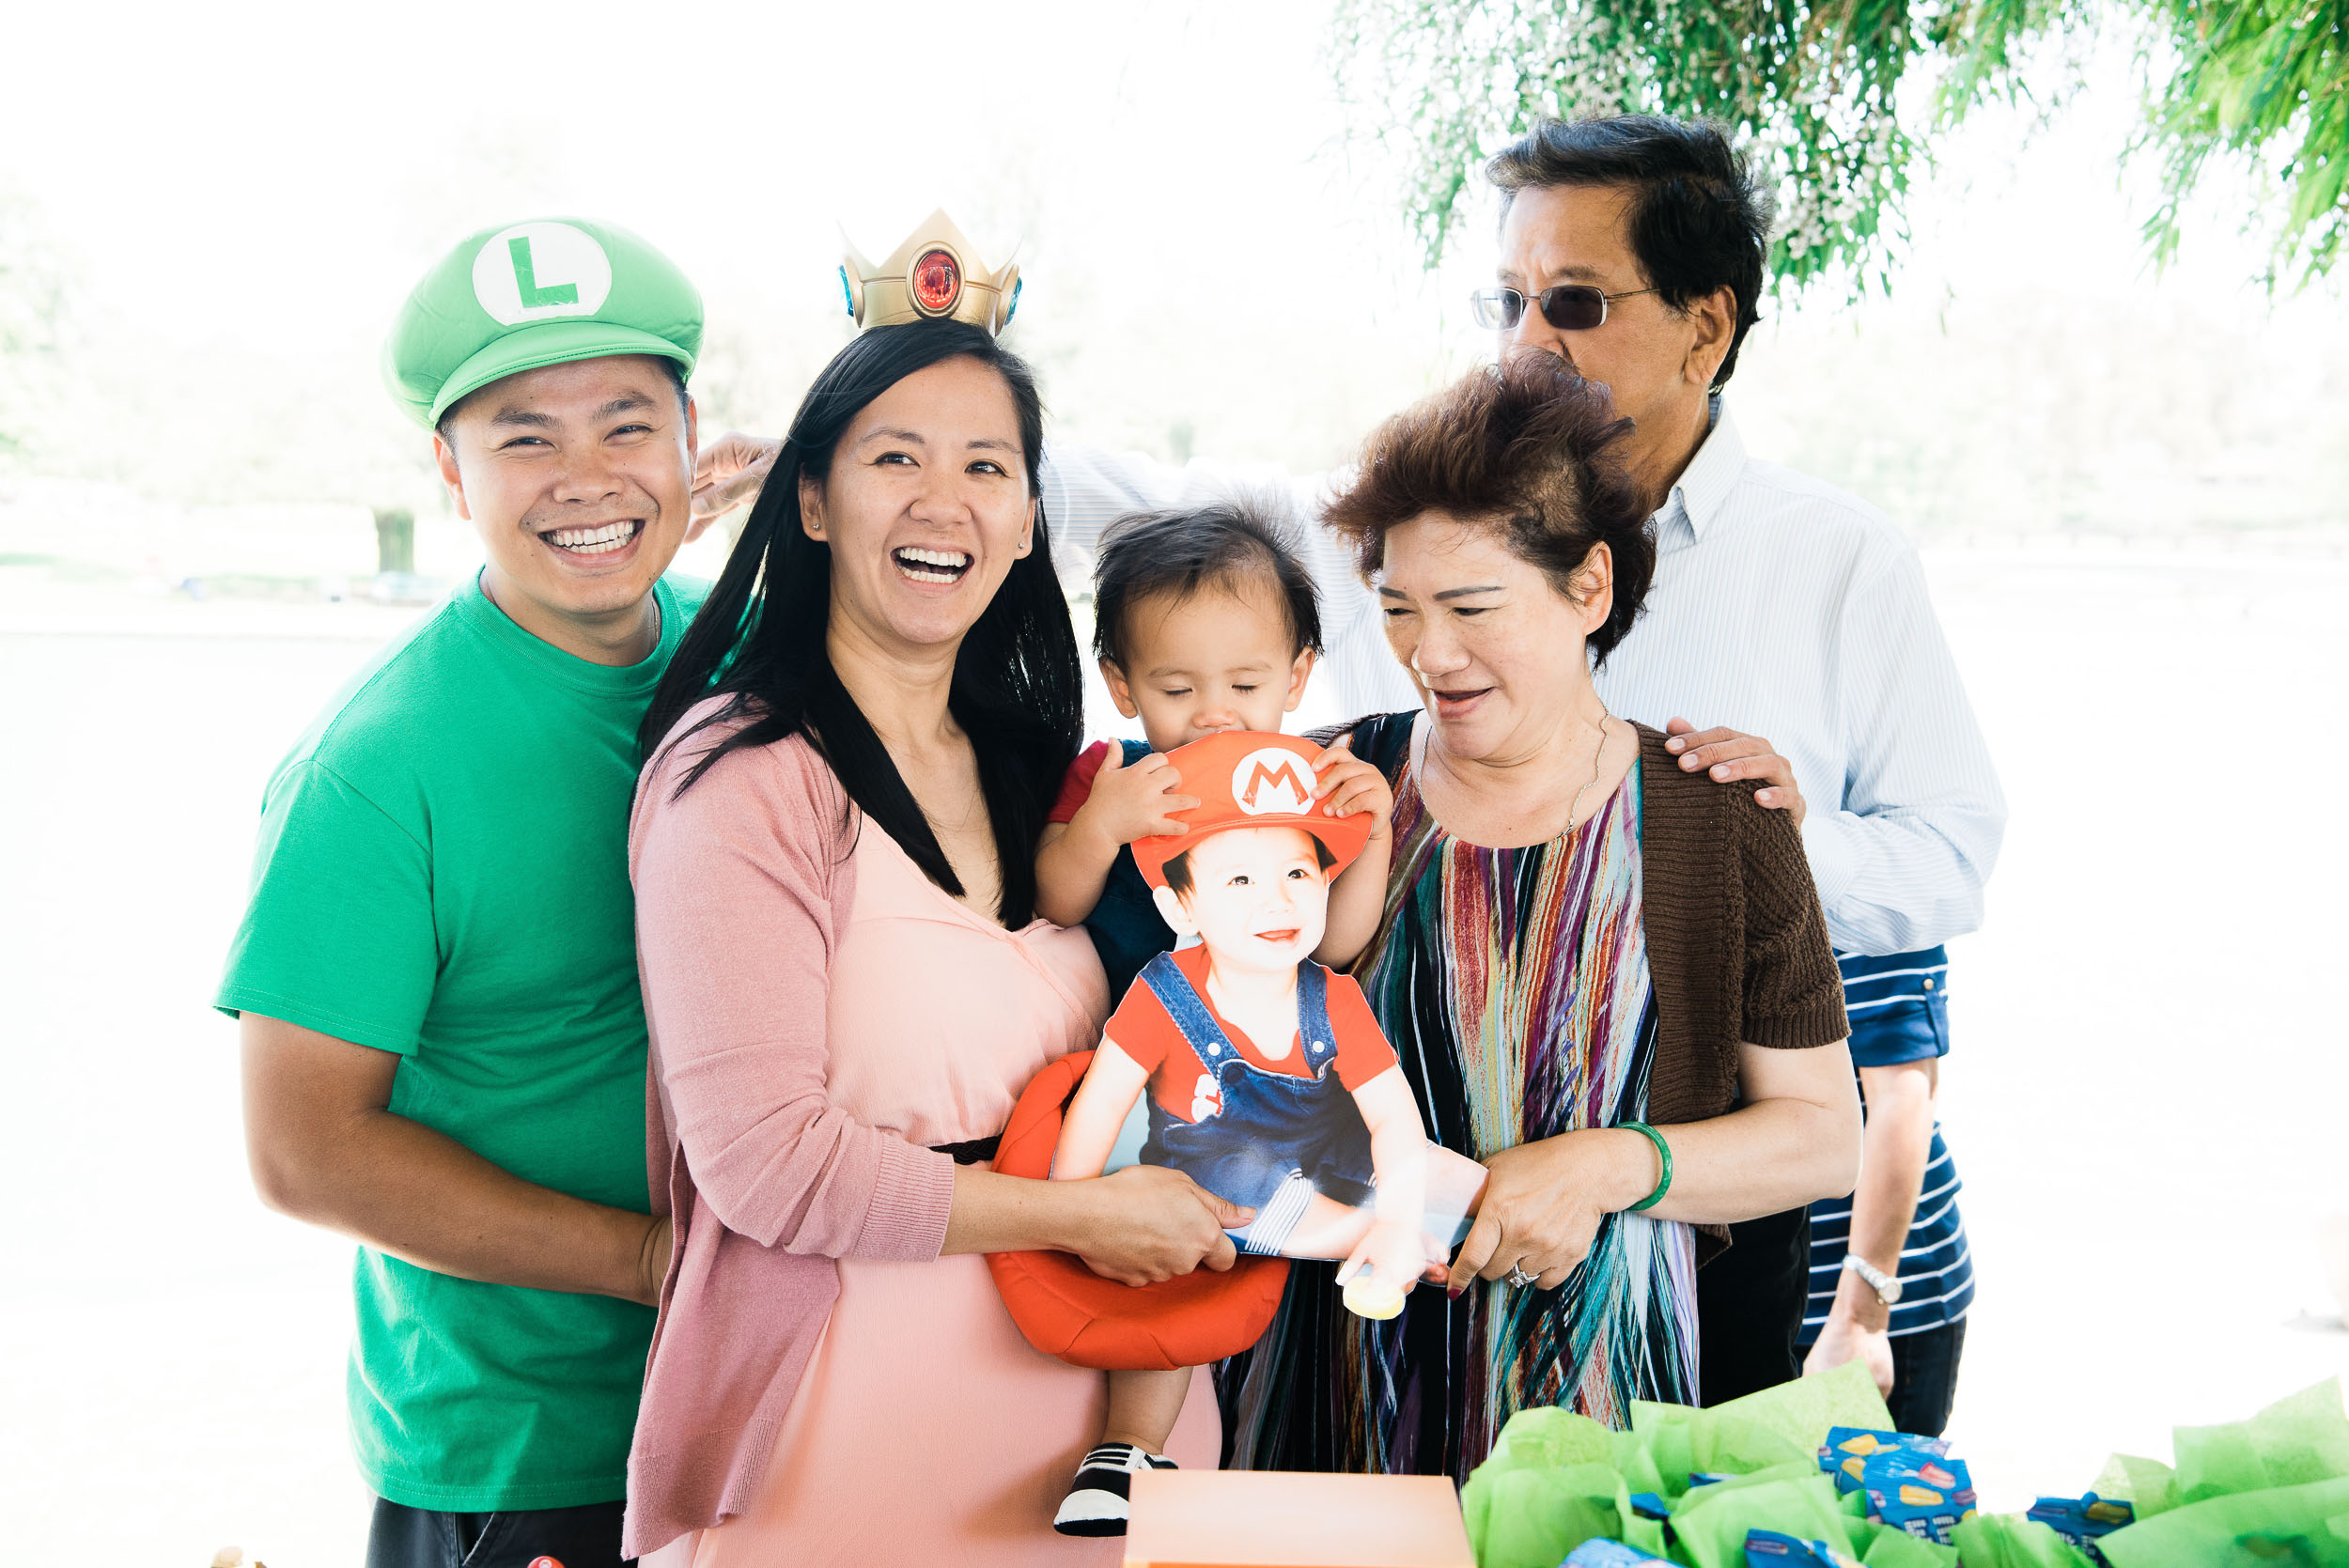 Bryan-Miraflor-Photography-Davin-First-Birthday-Irvine-20170603-0422.jpg